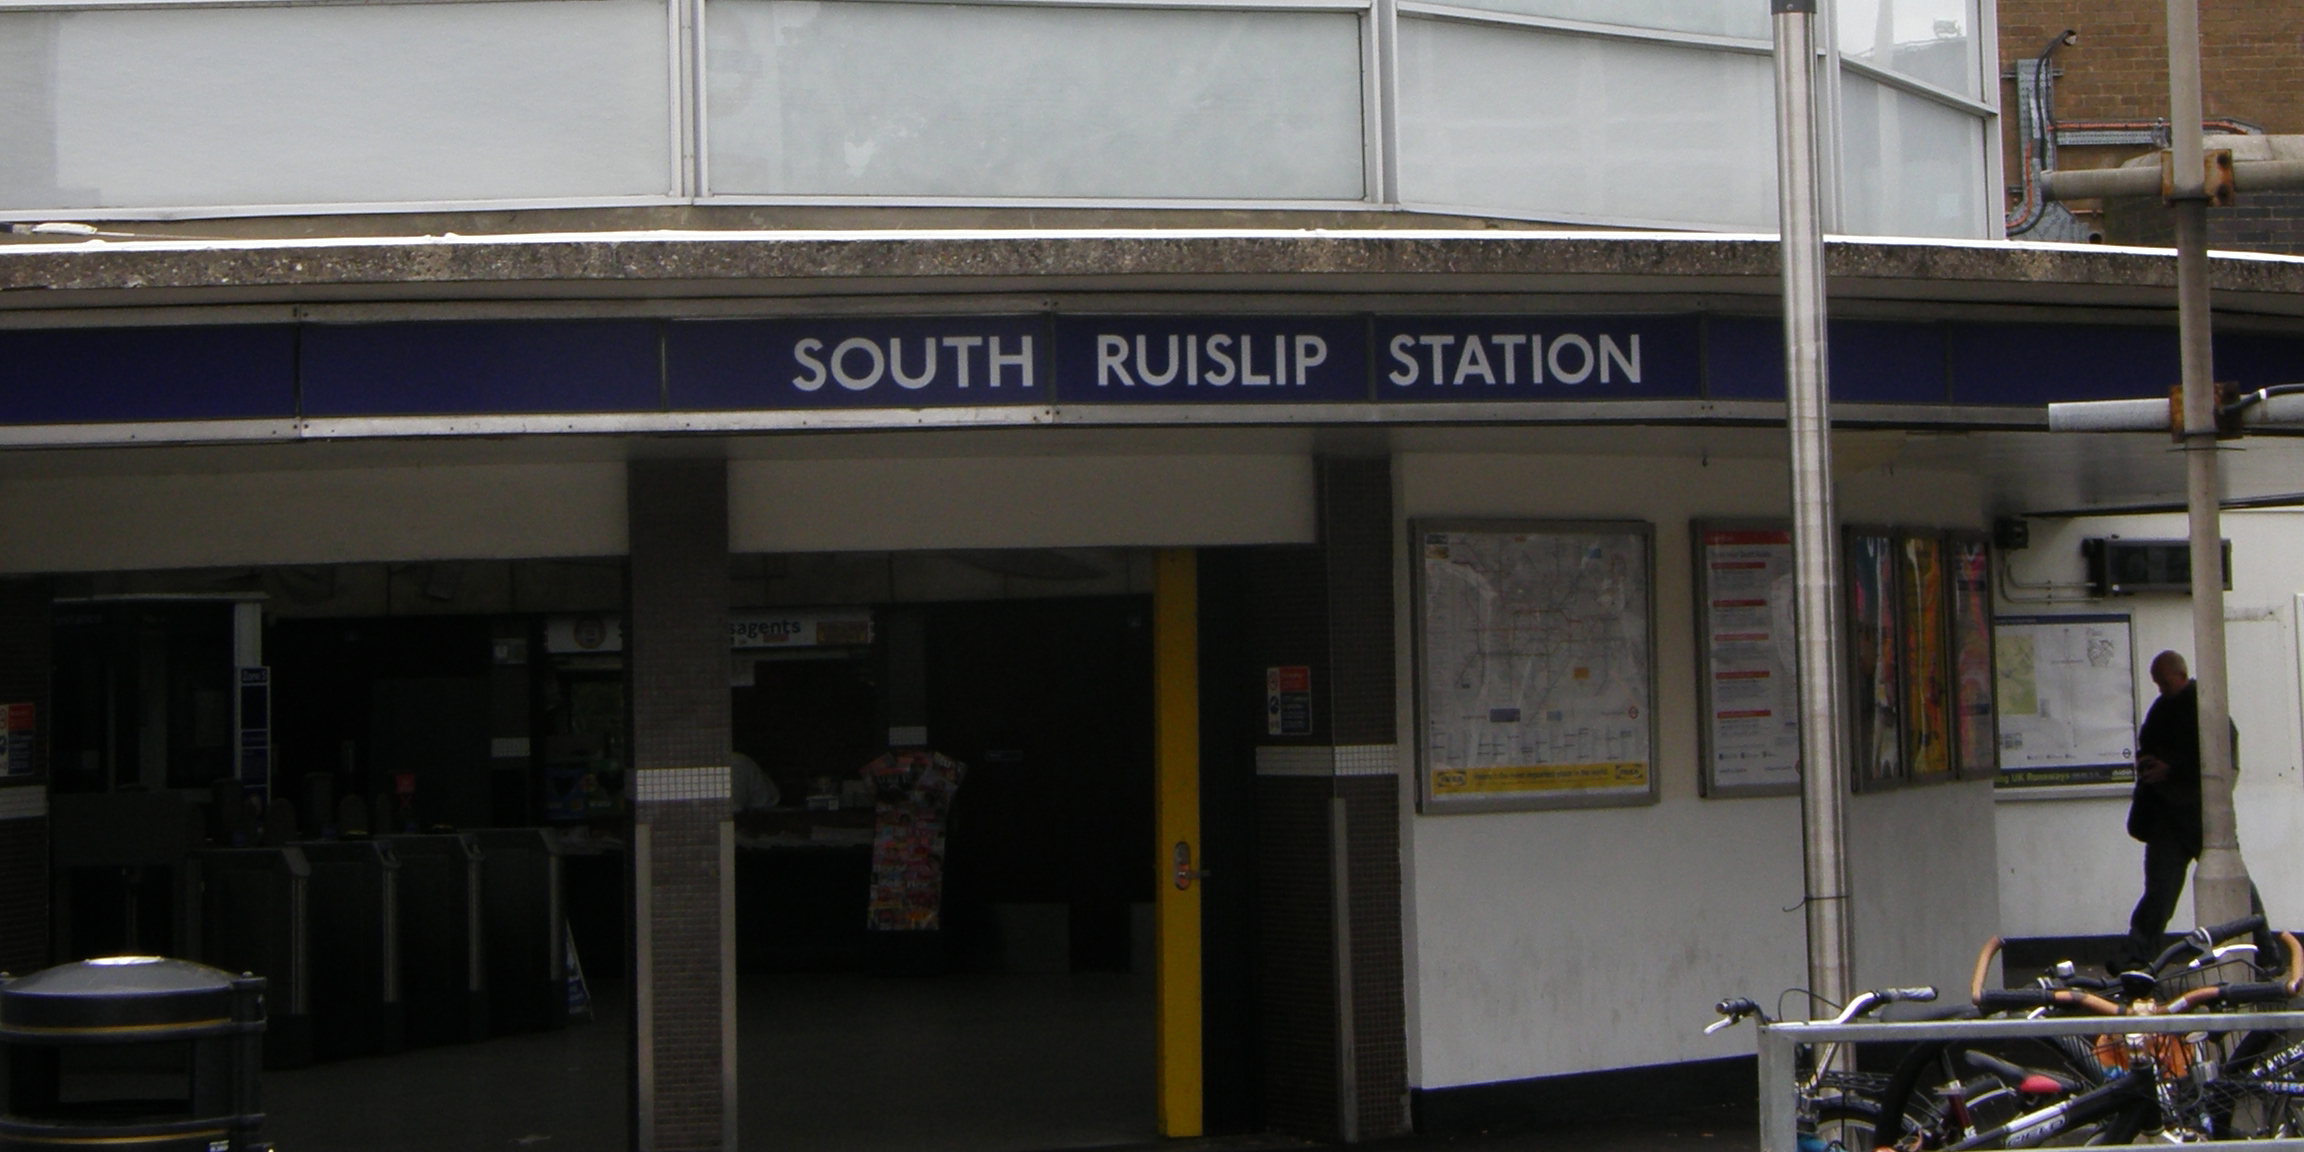 South Ruislip minicabs, South Ruislip taxis, South Ruislip cabs